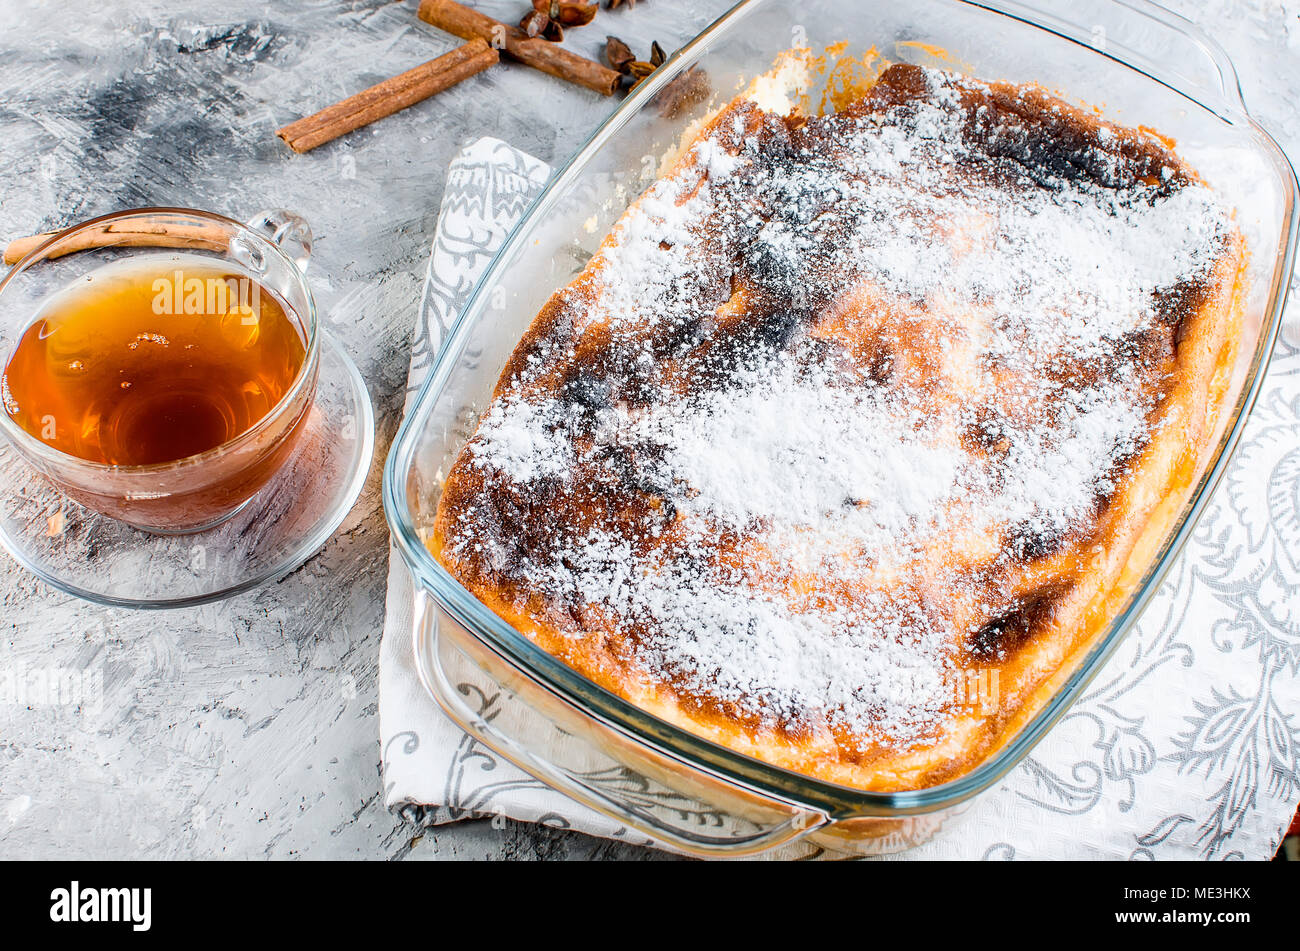 cottage cheese casserole with  tea on a wooden table. health or diet concept.selective focus - Stock Image